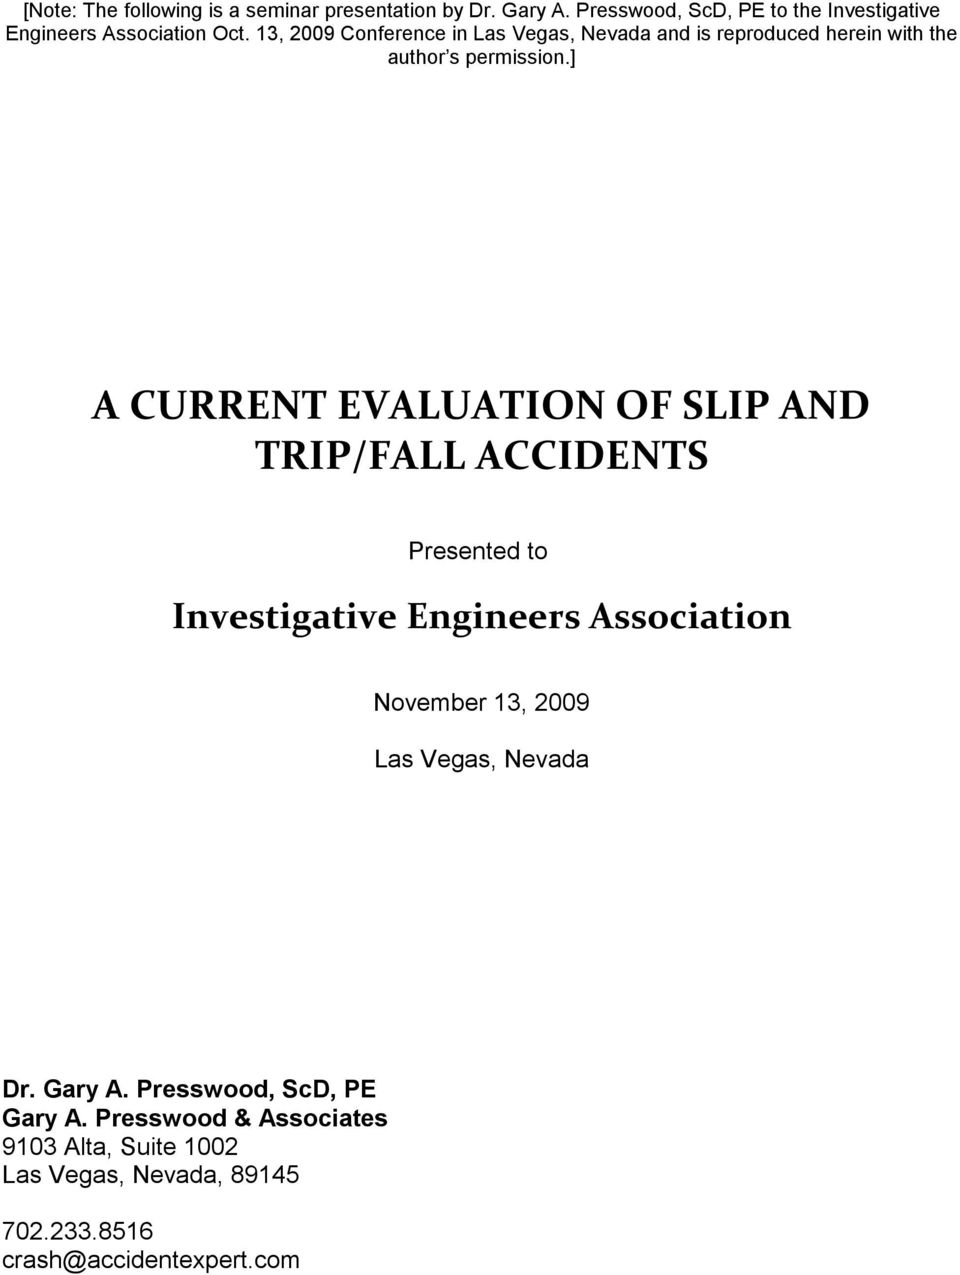 ] A CURRENT EVALUATION OF SLIP AND TRIP/FALL ACCIDENTS Presented to Investigative Engineers Association November 13, 2009 Las